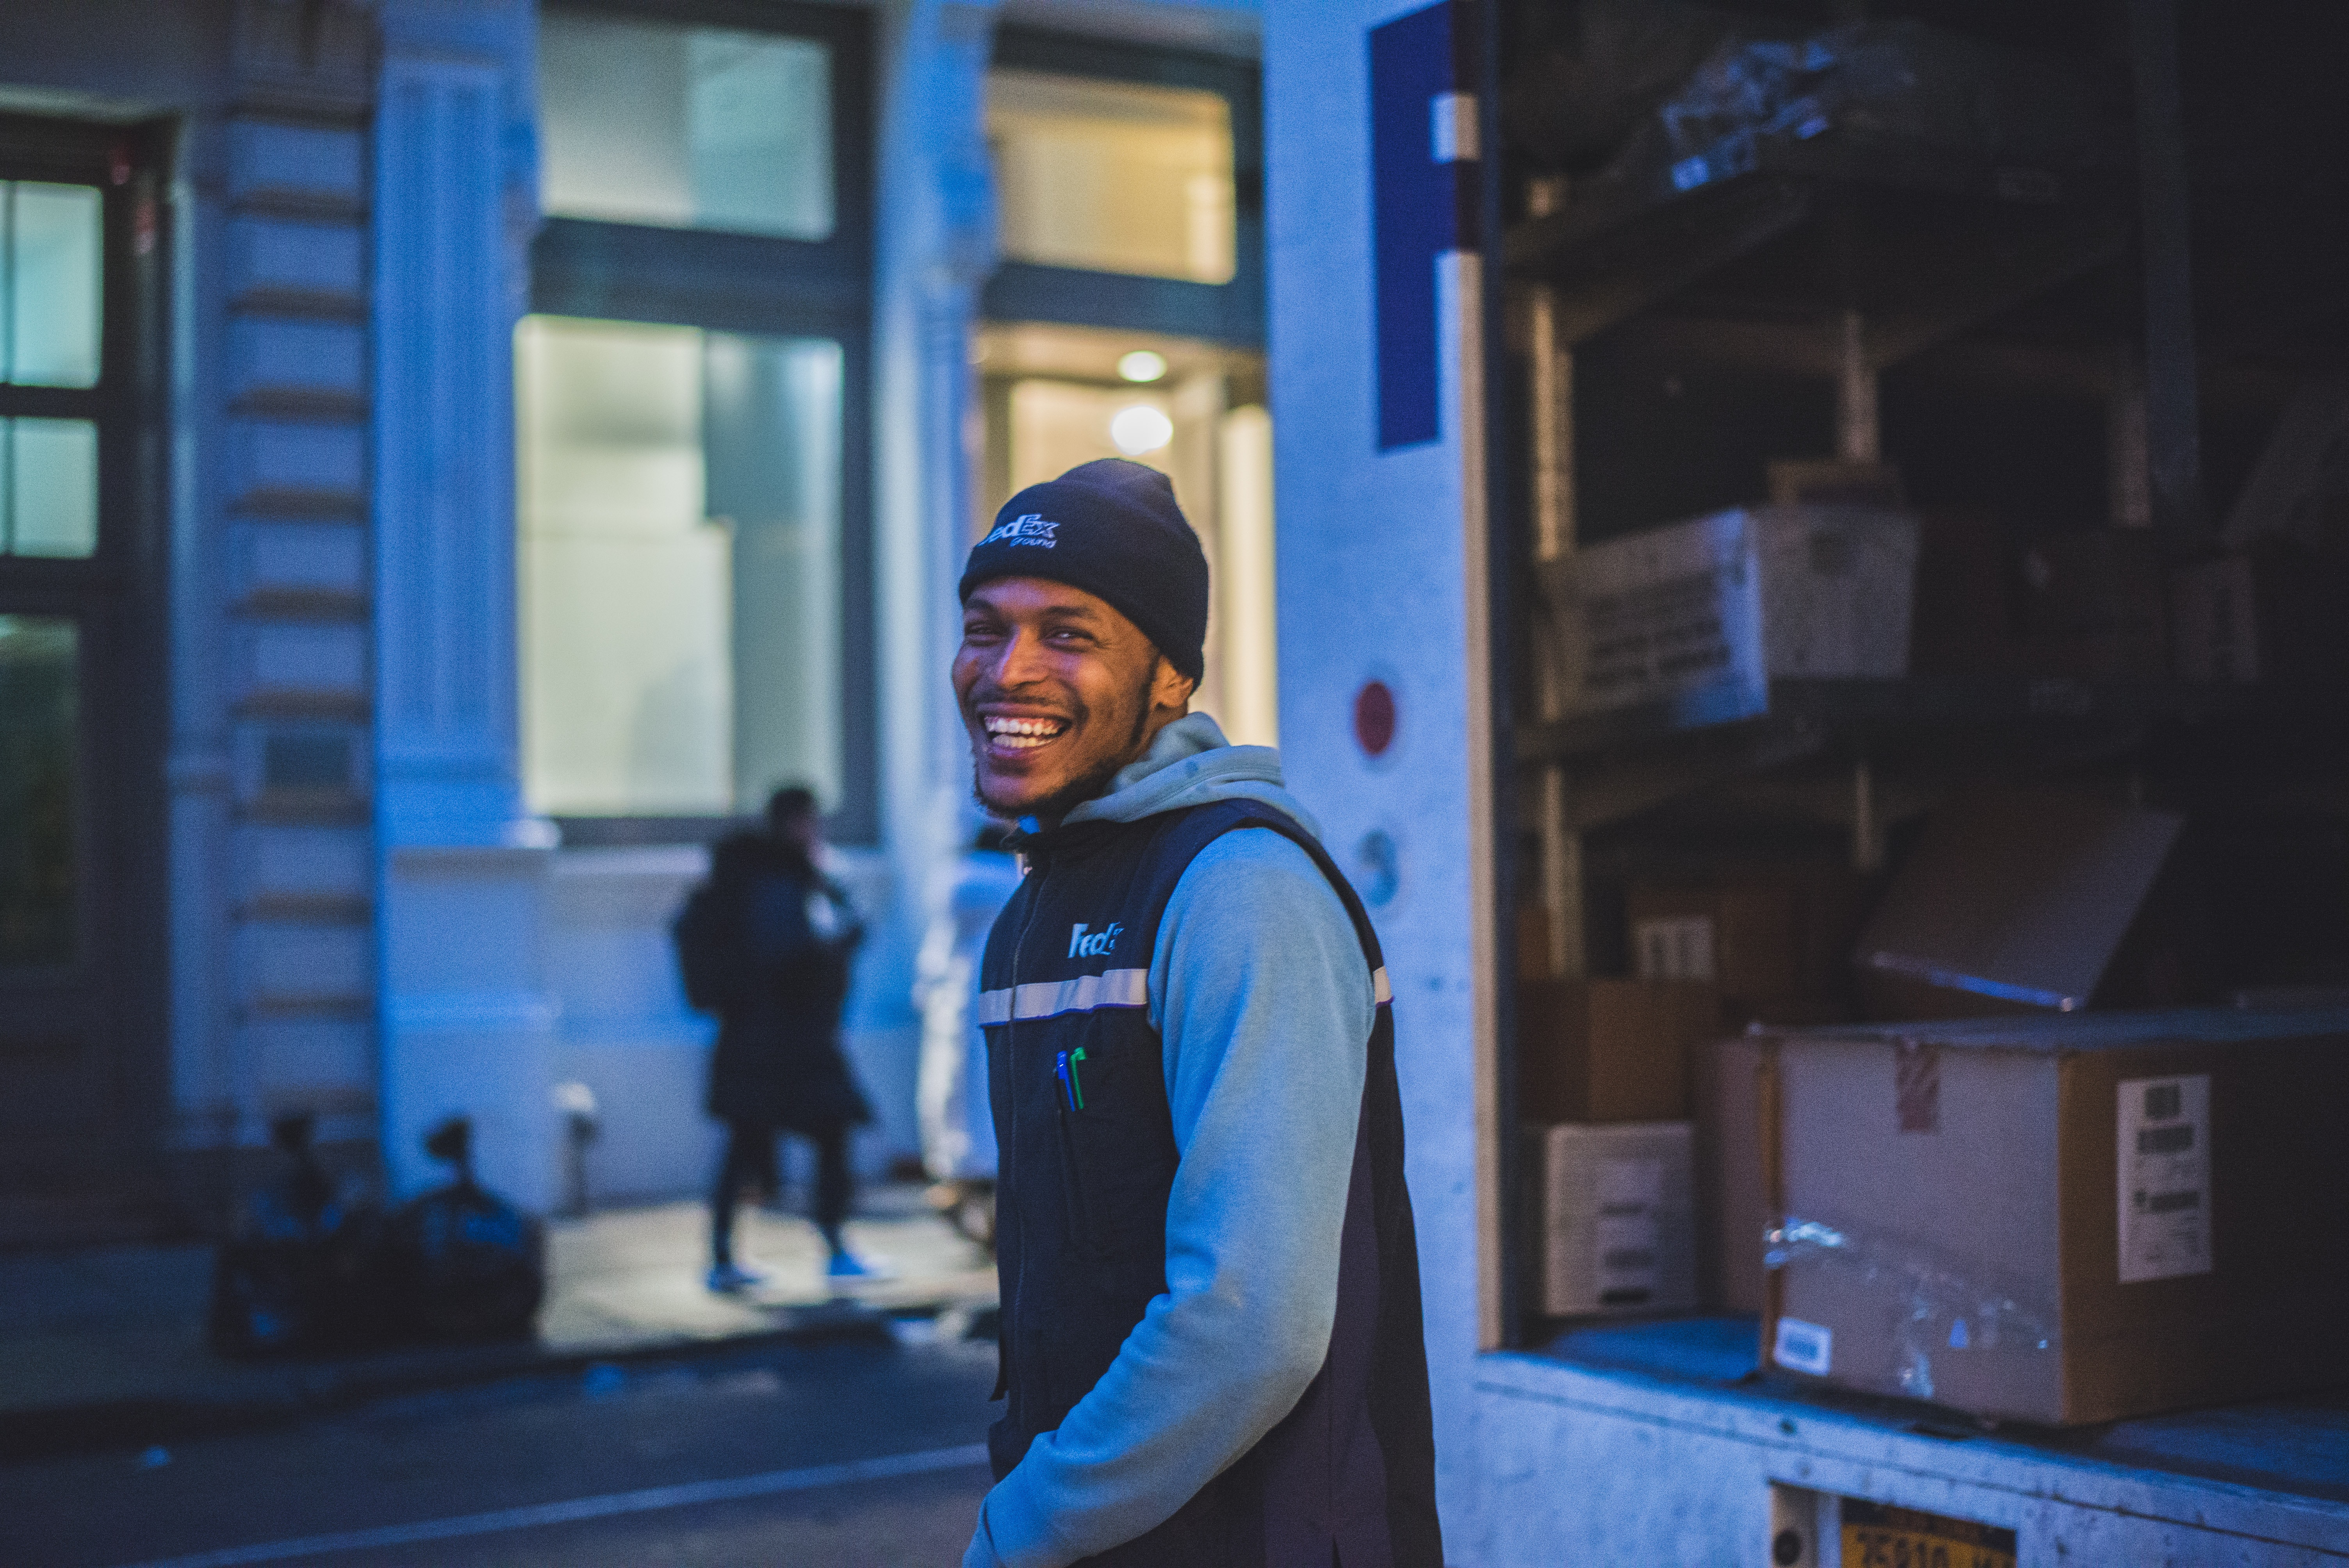 Delivery smiling man stands behind delivery truck